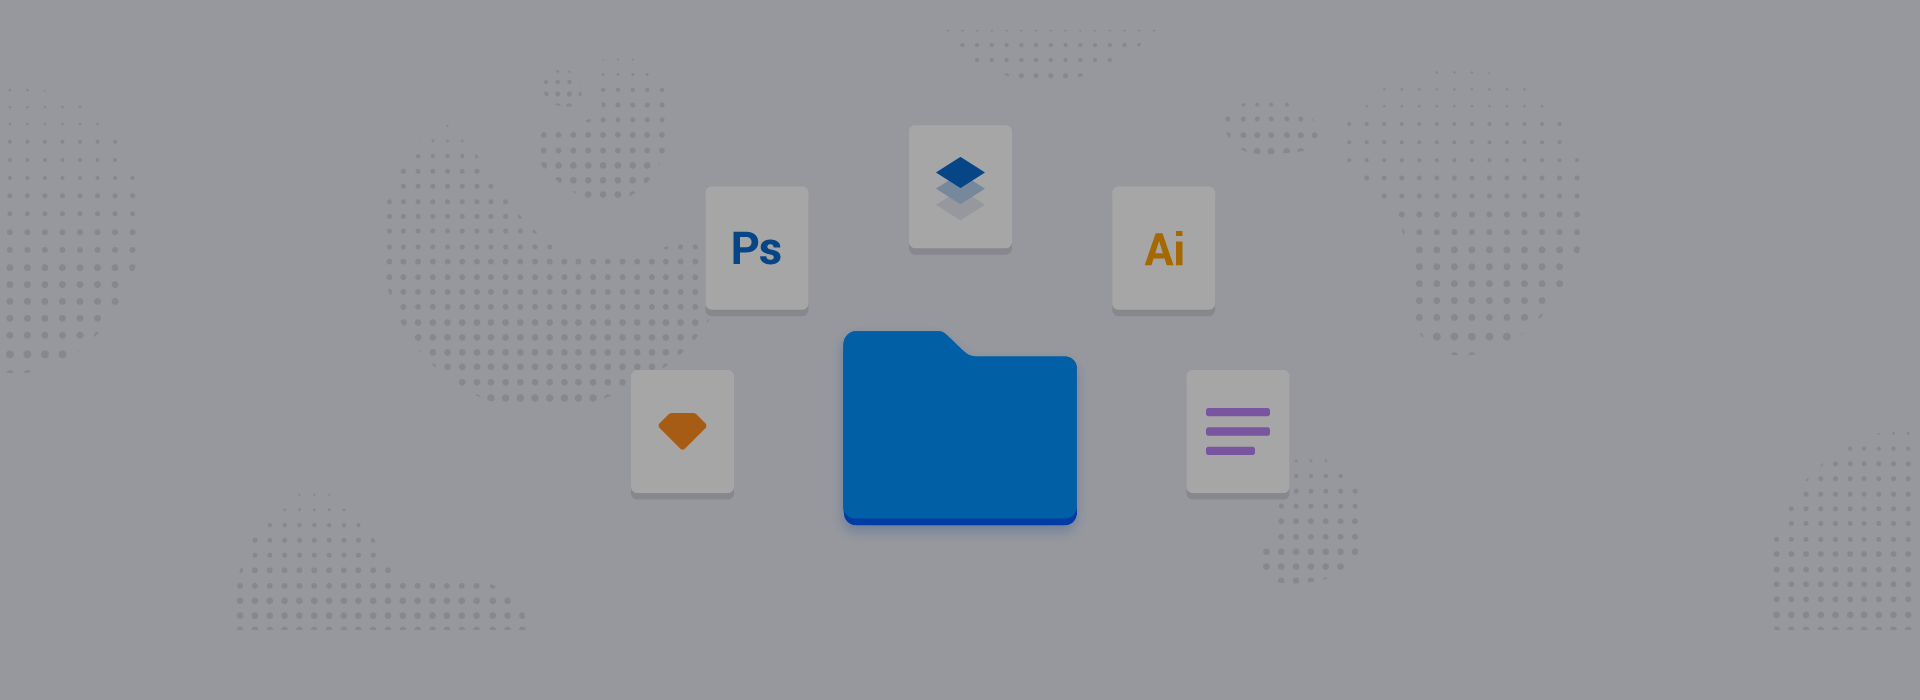 Web designers methods and tools for enhancing a workflow